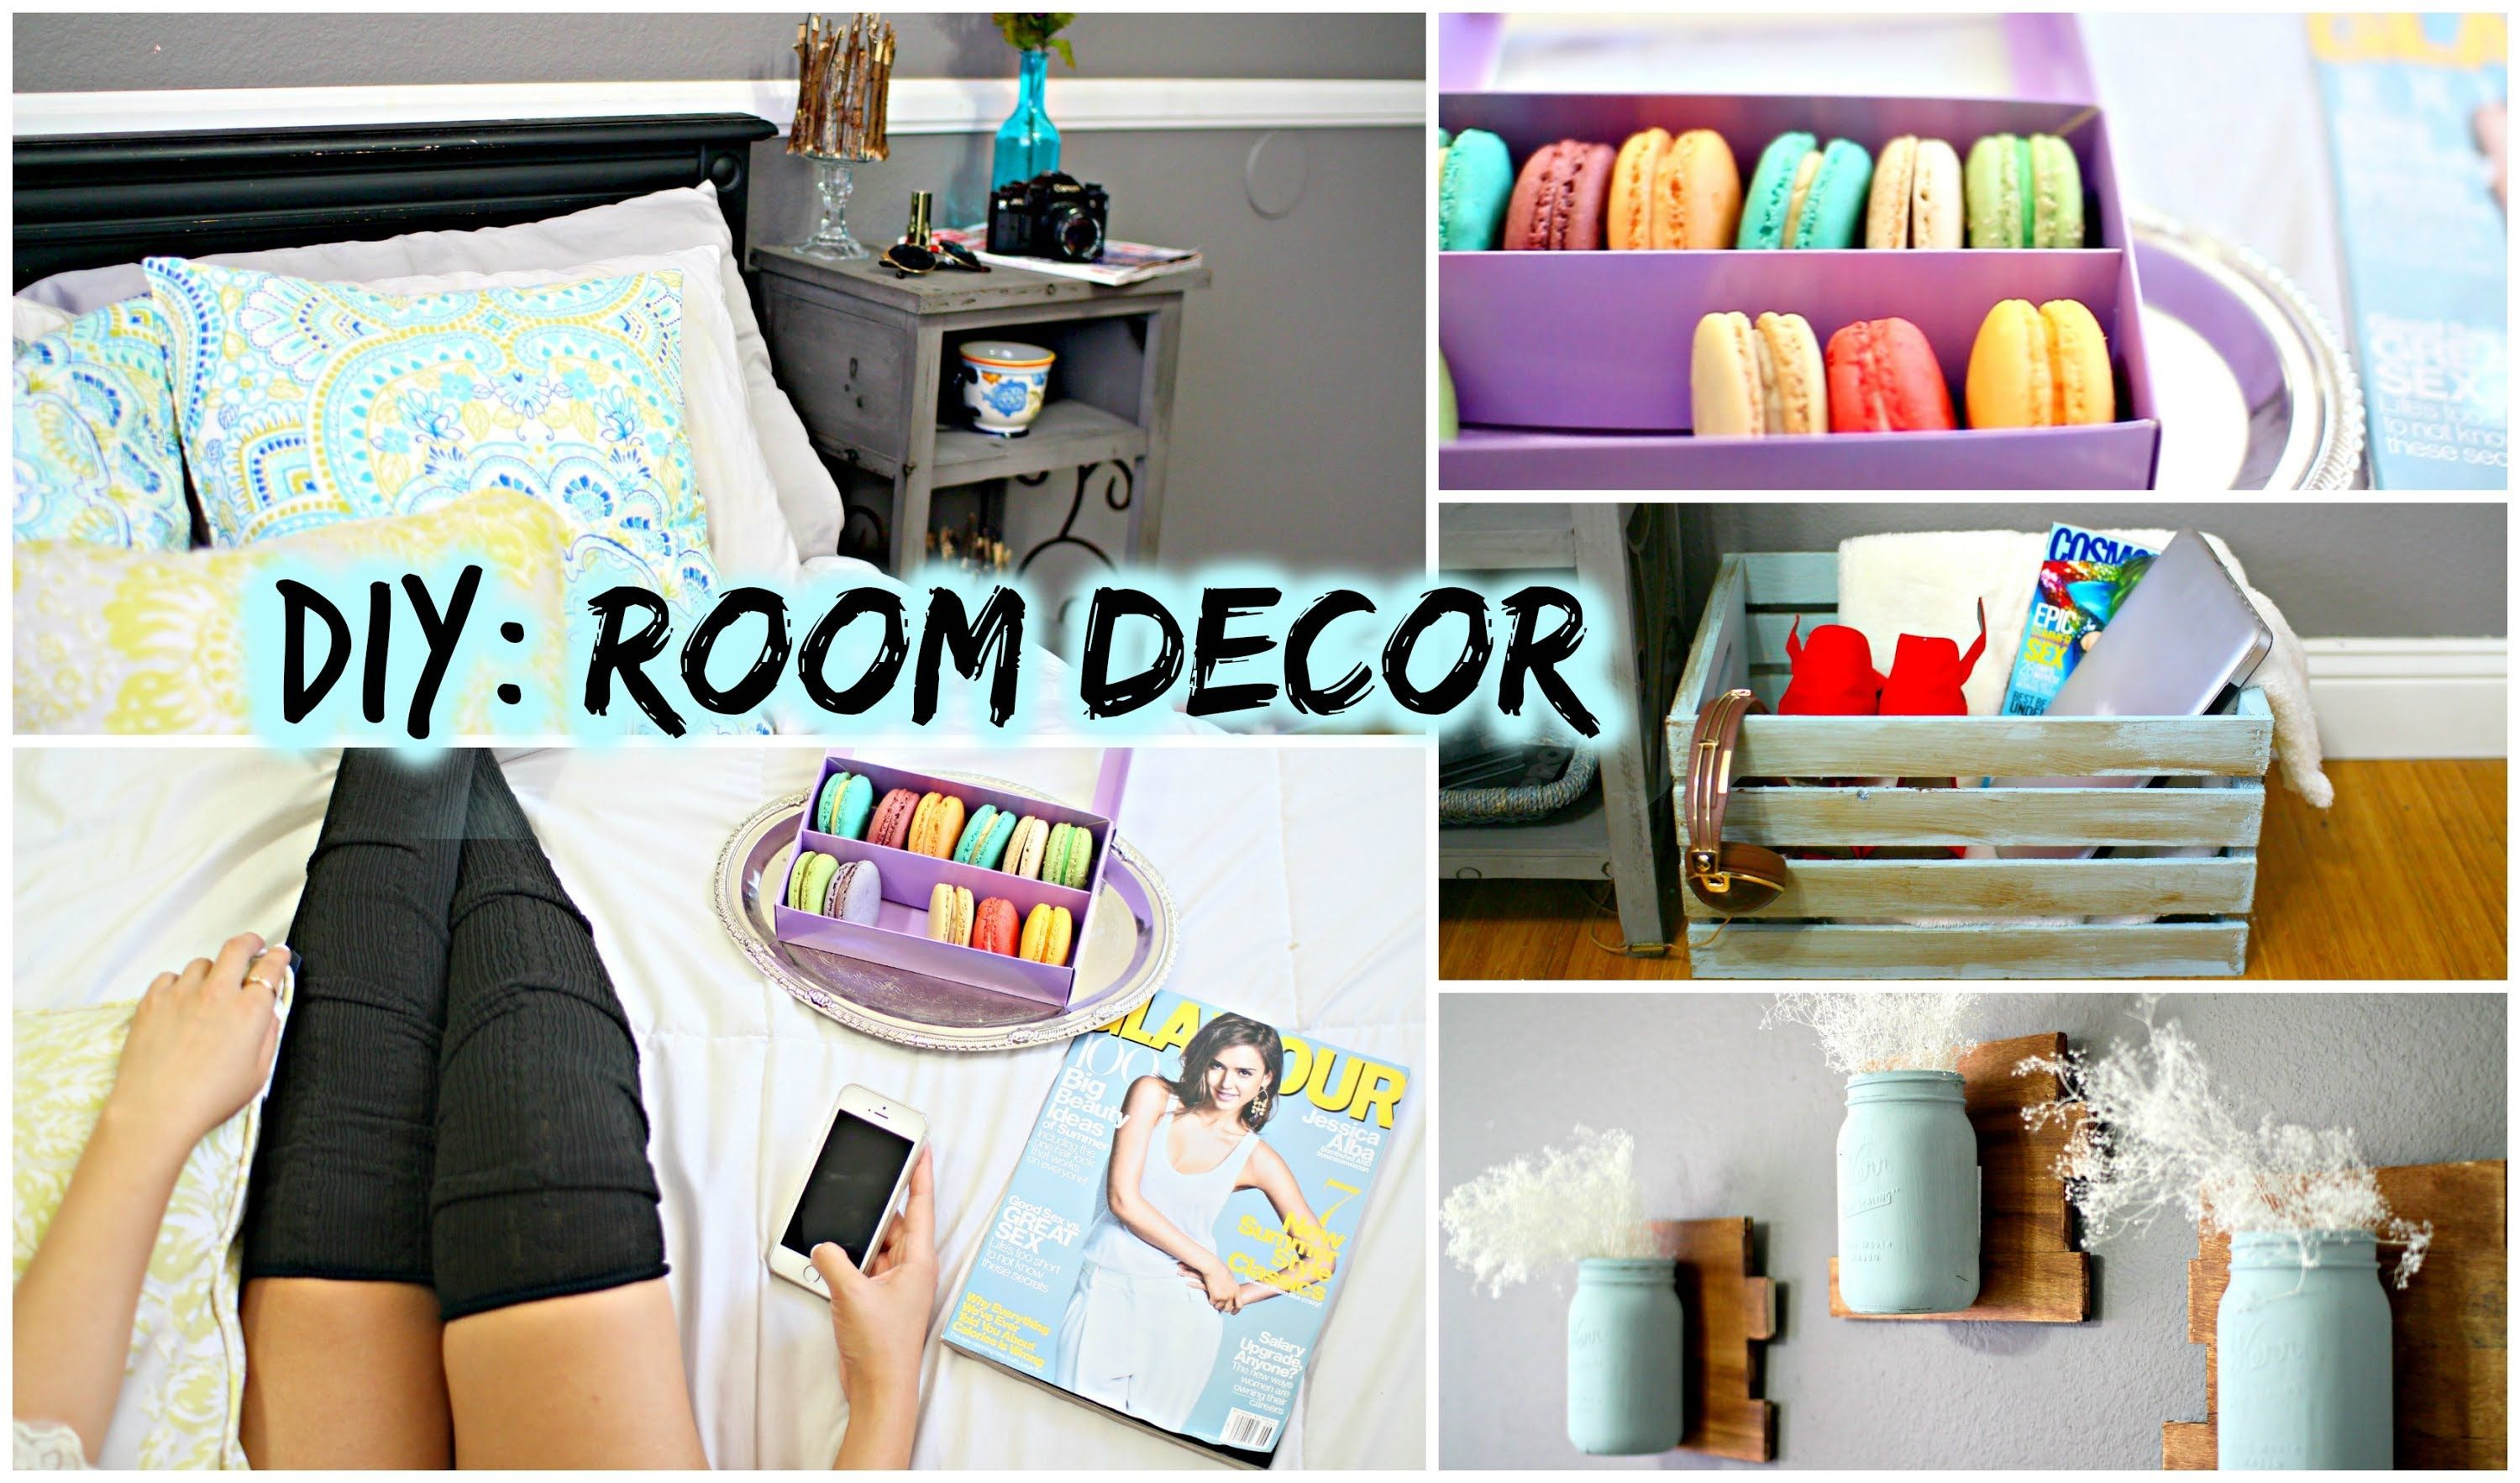 Love These Diys As Well If I Make All Of These Ideas From All Of These Videos My Room Wi Tumblr Room Decor Diy Home Decor For Teens Diy Crafts For